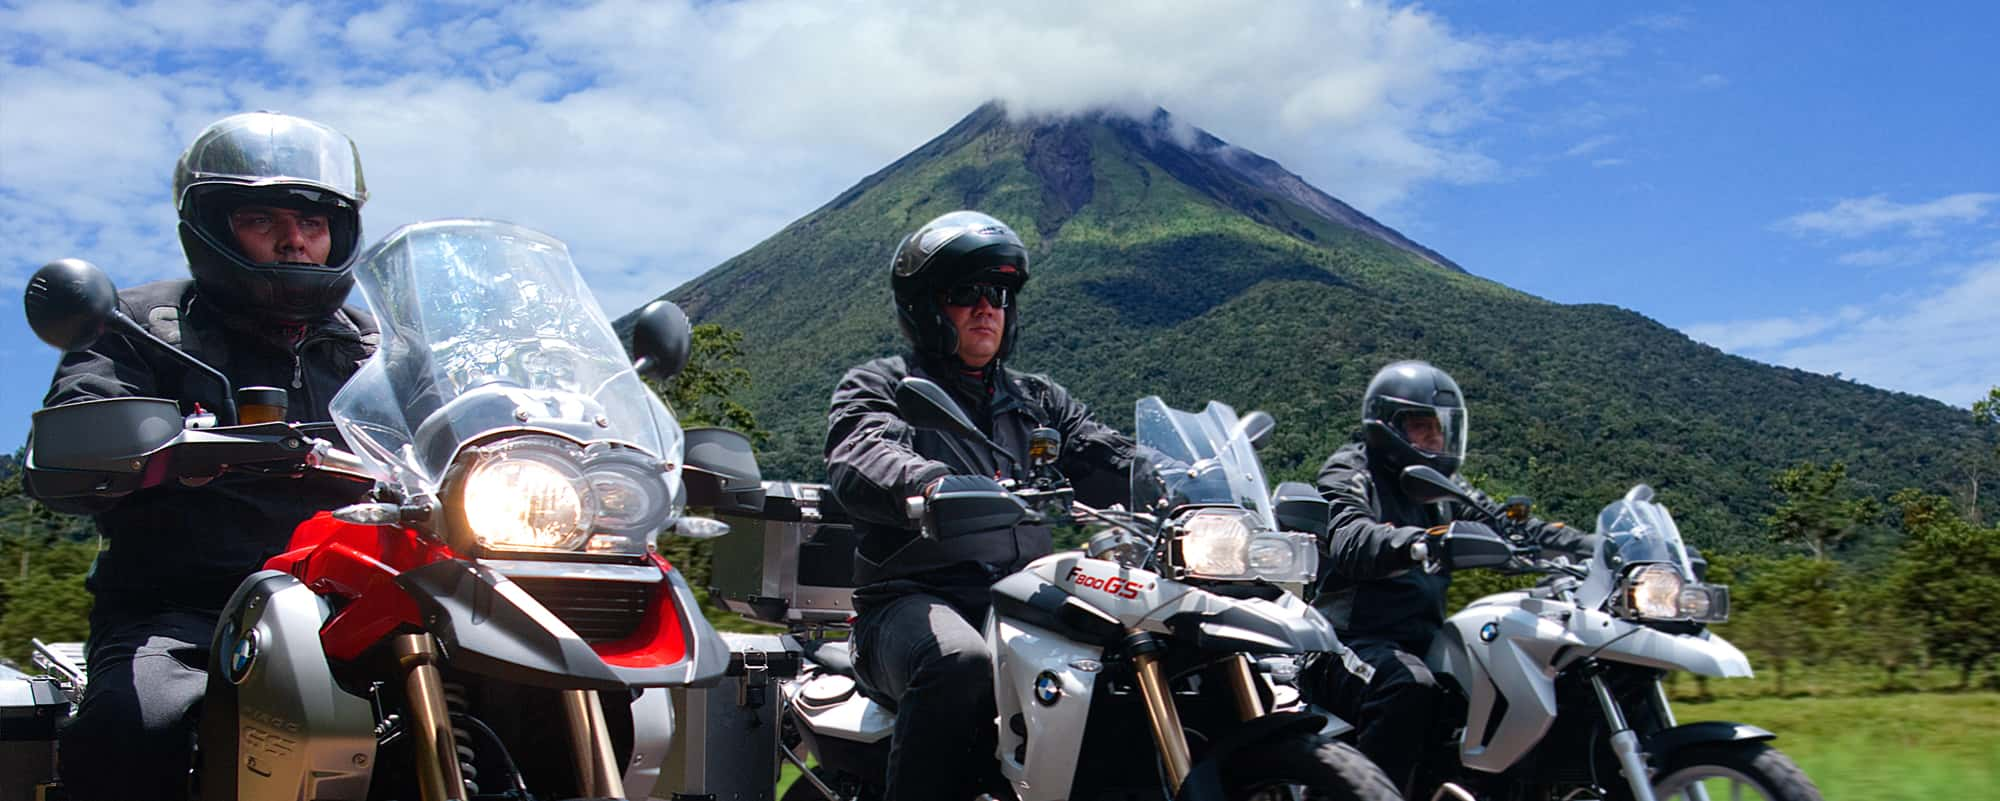 Costa Rica Motorcycle Tours Packages Amp Rentals